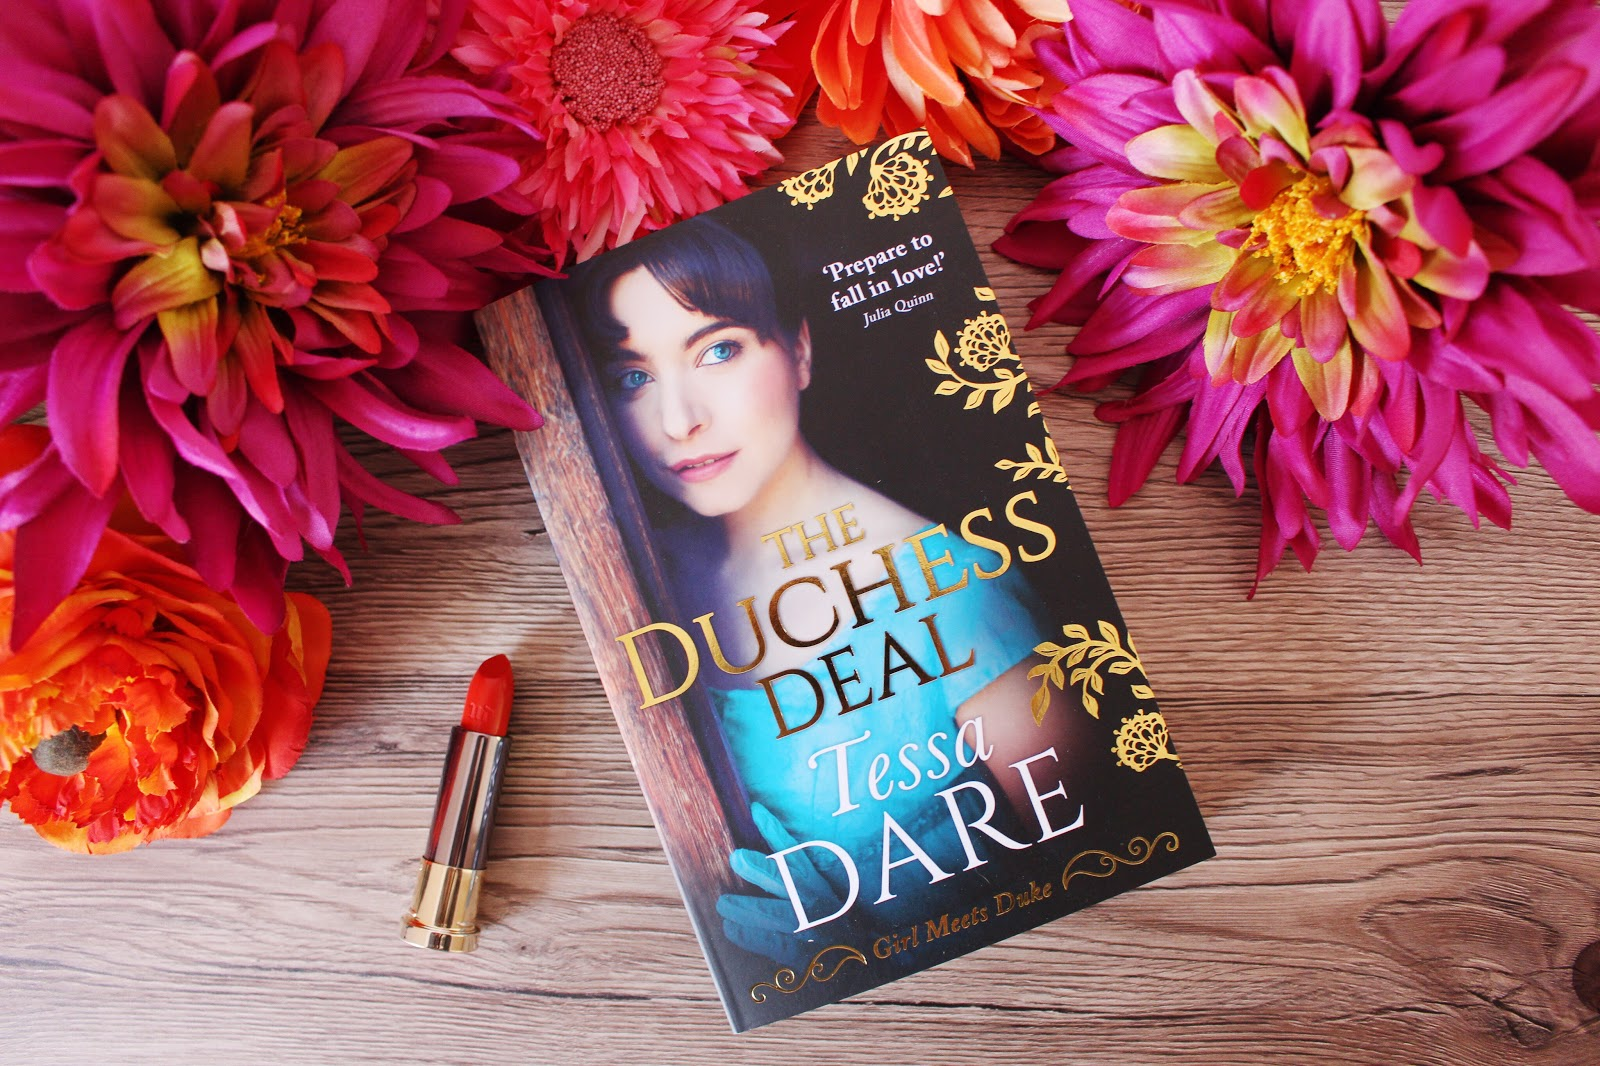 The Duchess Deal by Tessa Dare | Blog Tour, Review and Extract